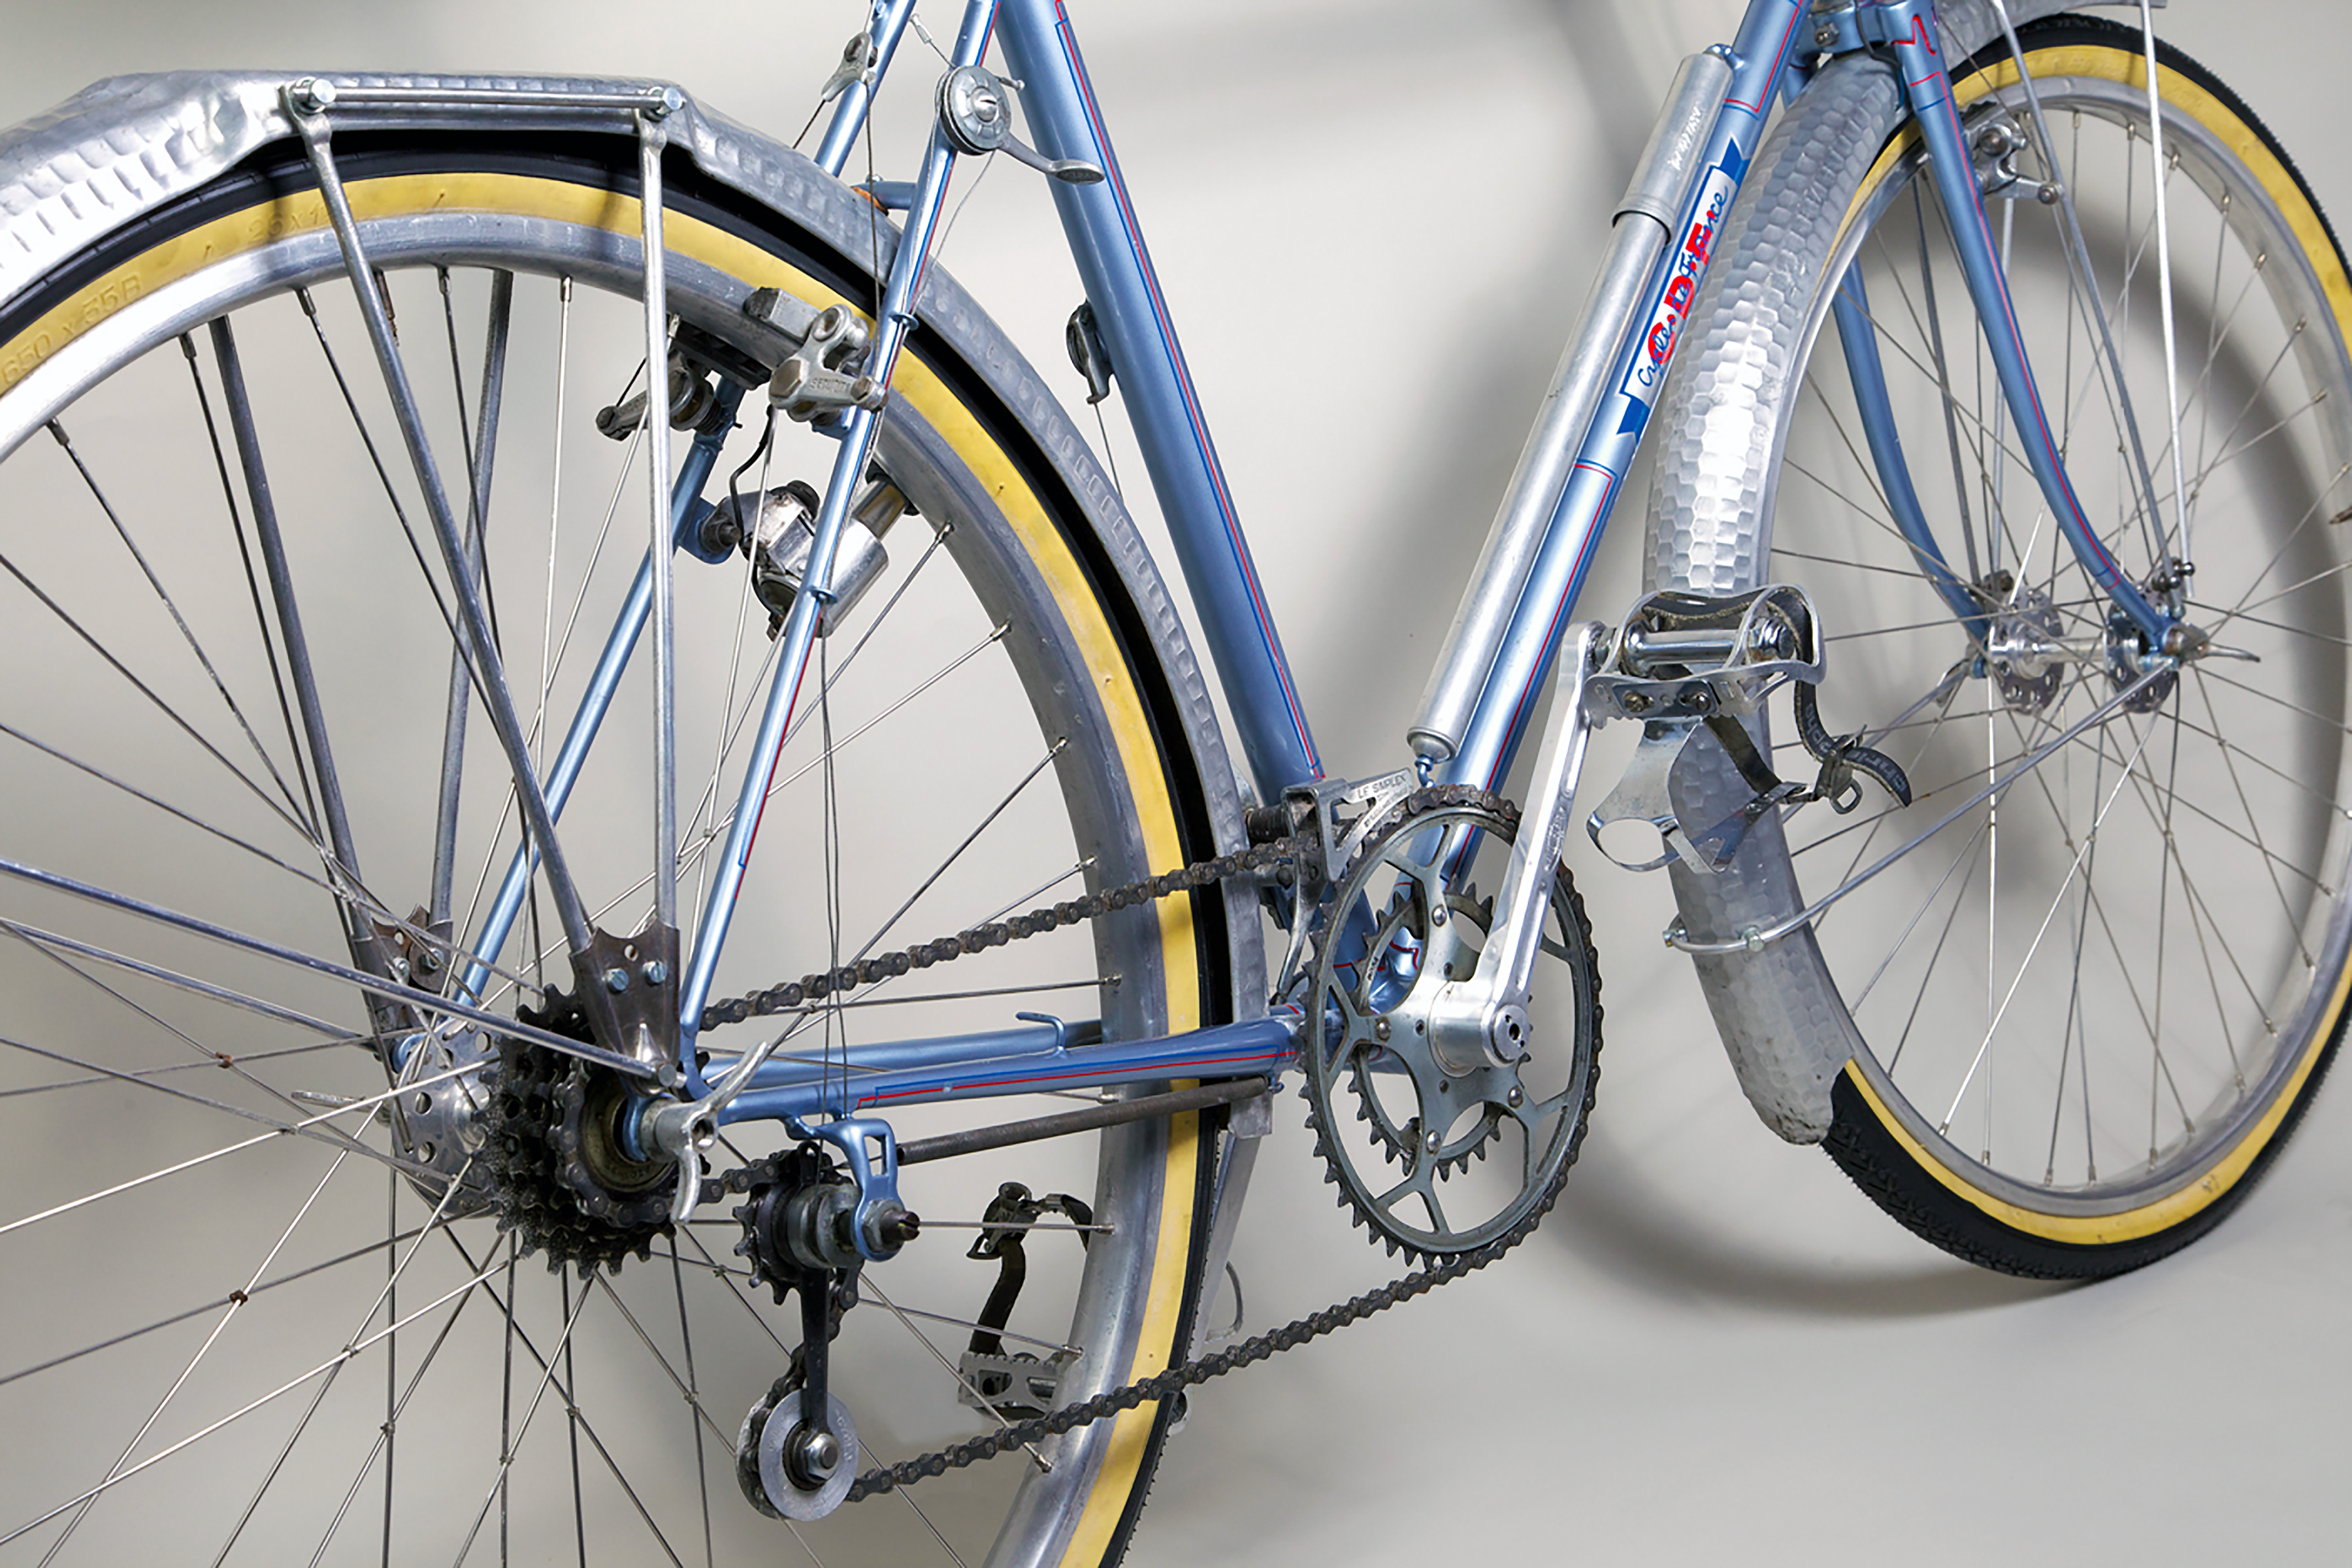 ebykr-1948-cdf-concours-randonneuse-stronglight-model-49-double-crankset